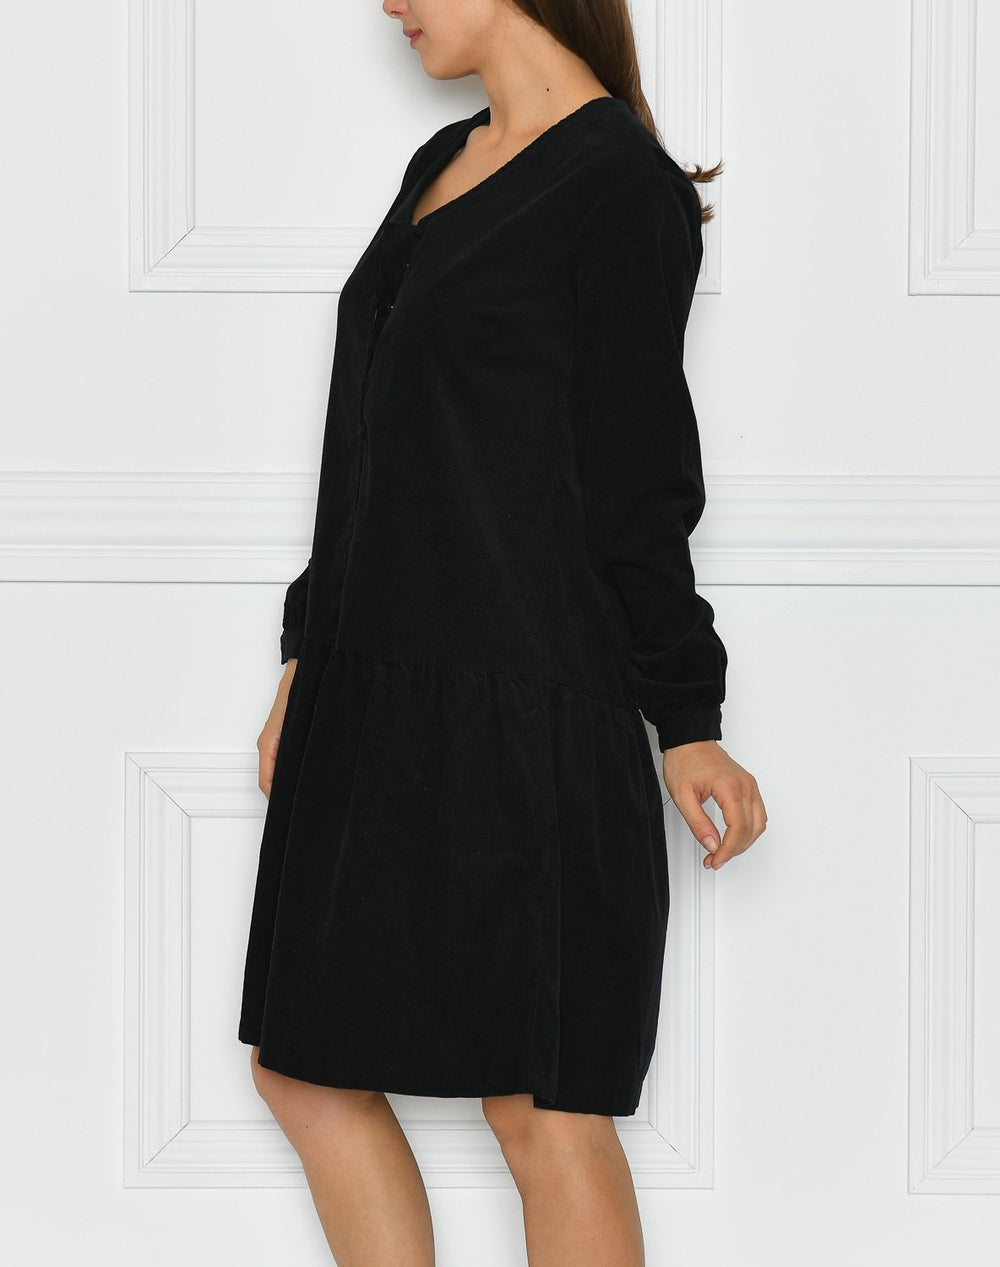 Luxzuz Pam dress black - Online-Mode